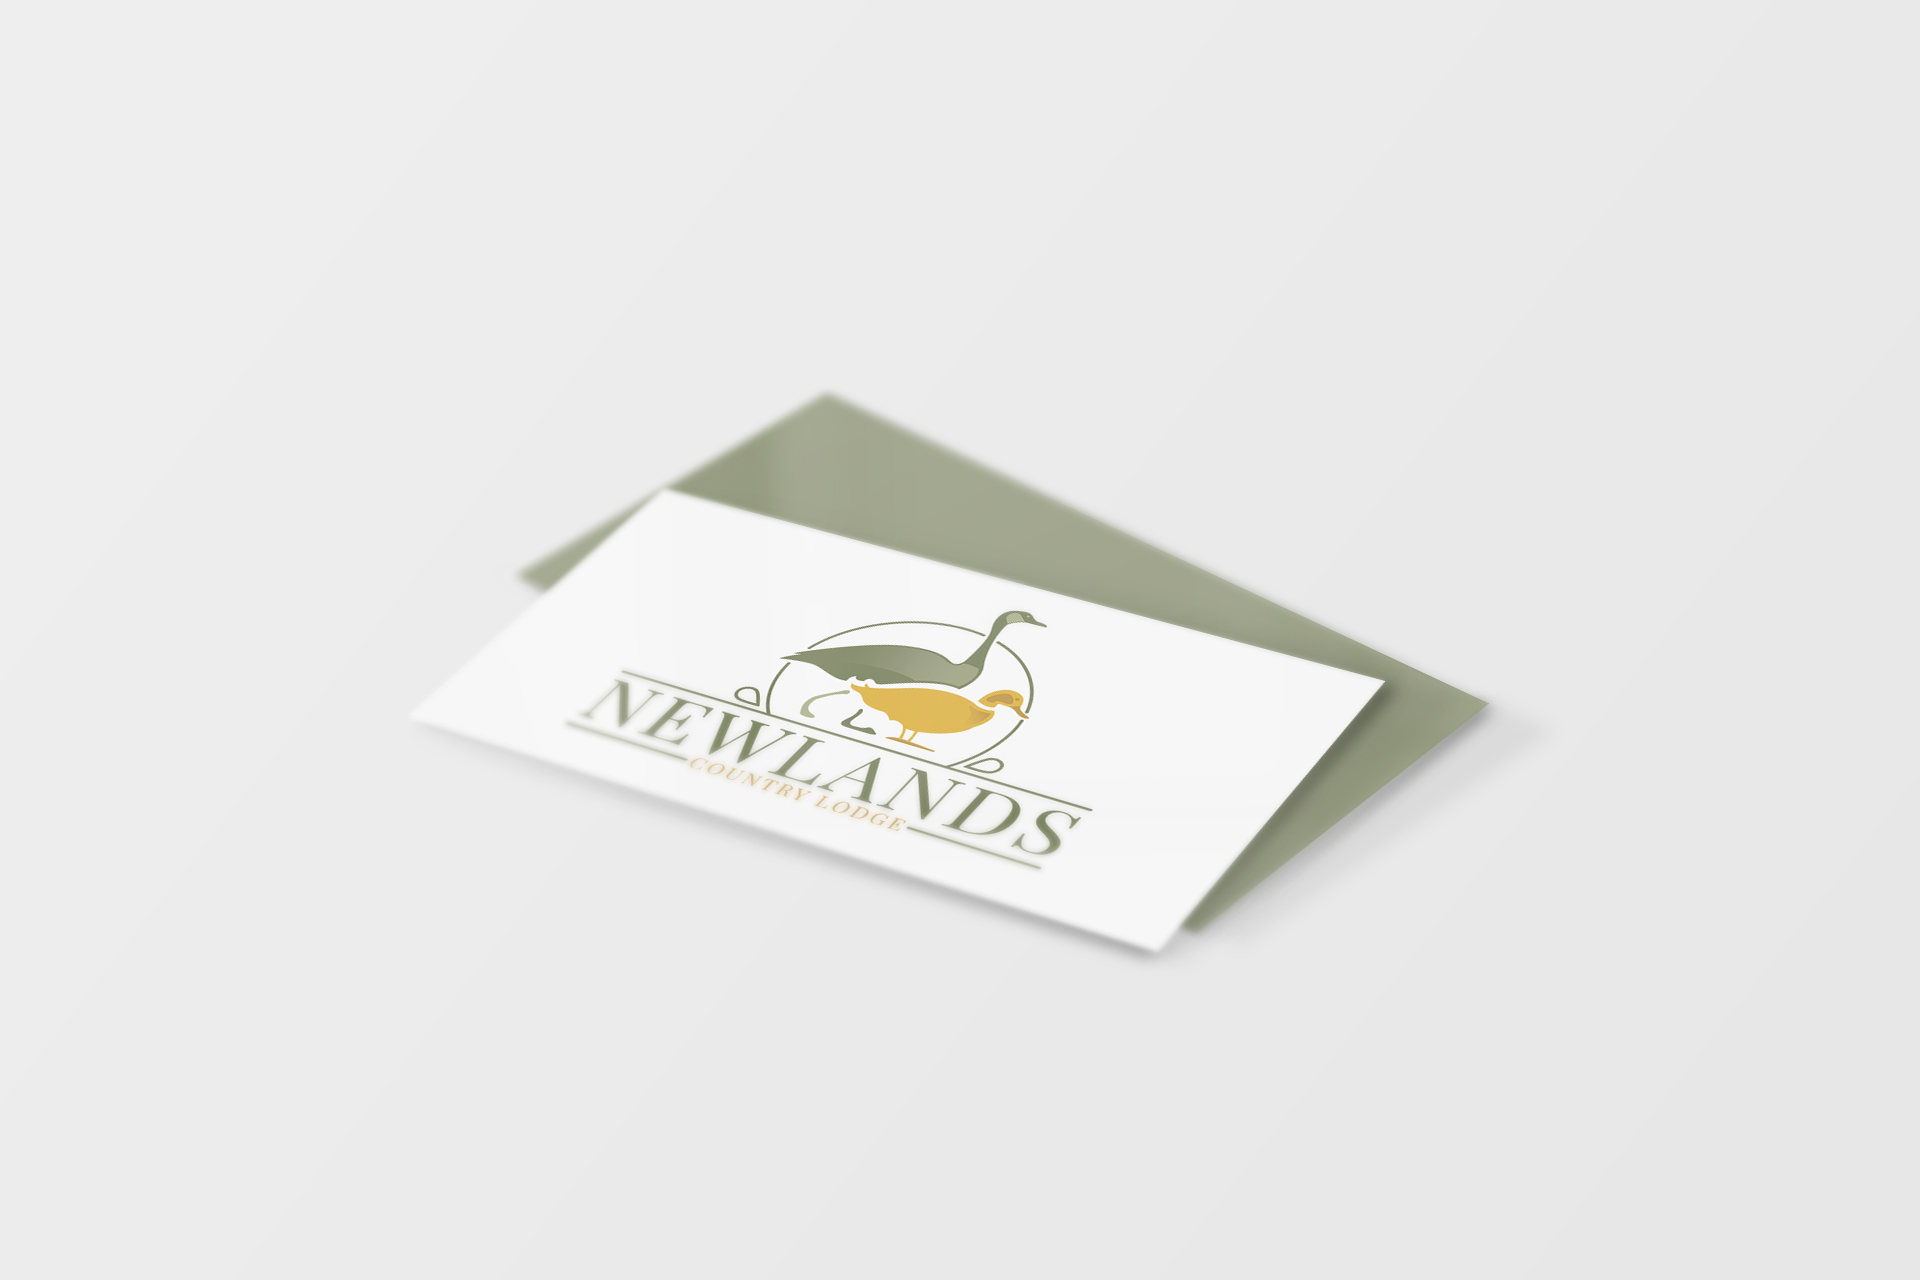 Newlands Lodge - Branding